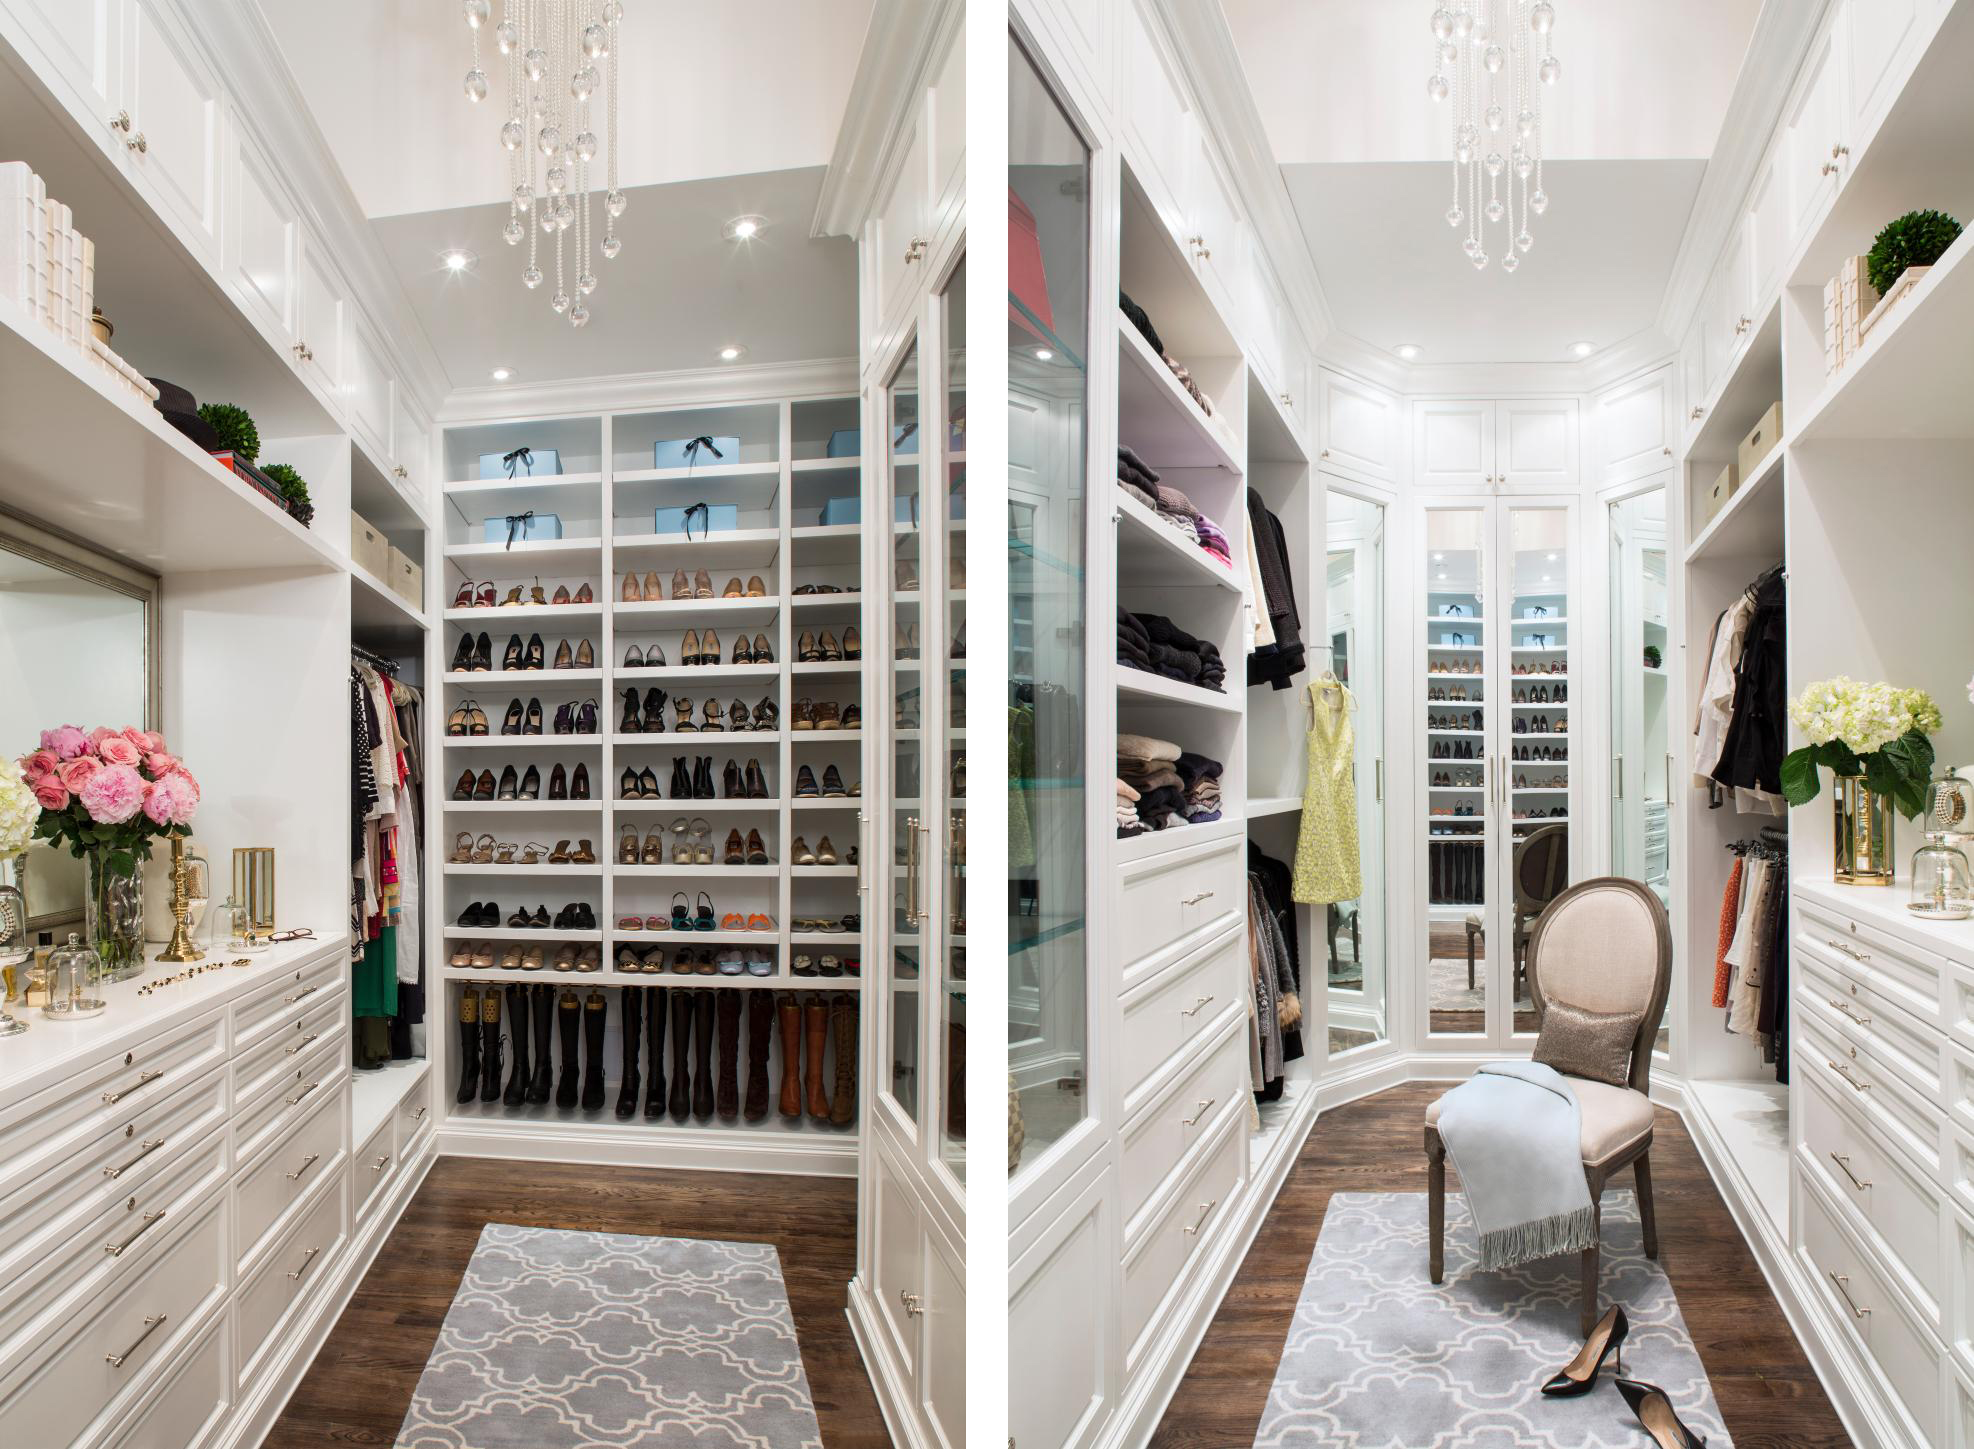 5 Top Luxurious Ideas Of Closets 5 Top Luxurious Ideas Of Closets 5 Top Luxurious Ideas Of Closets Lisa Adams London Loft Master Luxury Closets